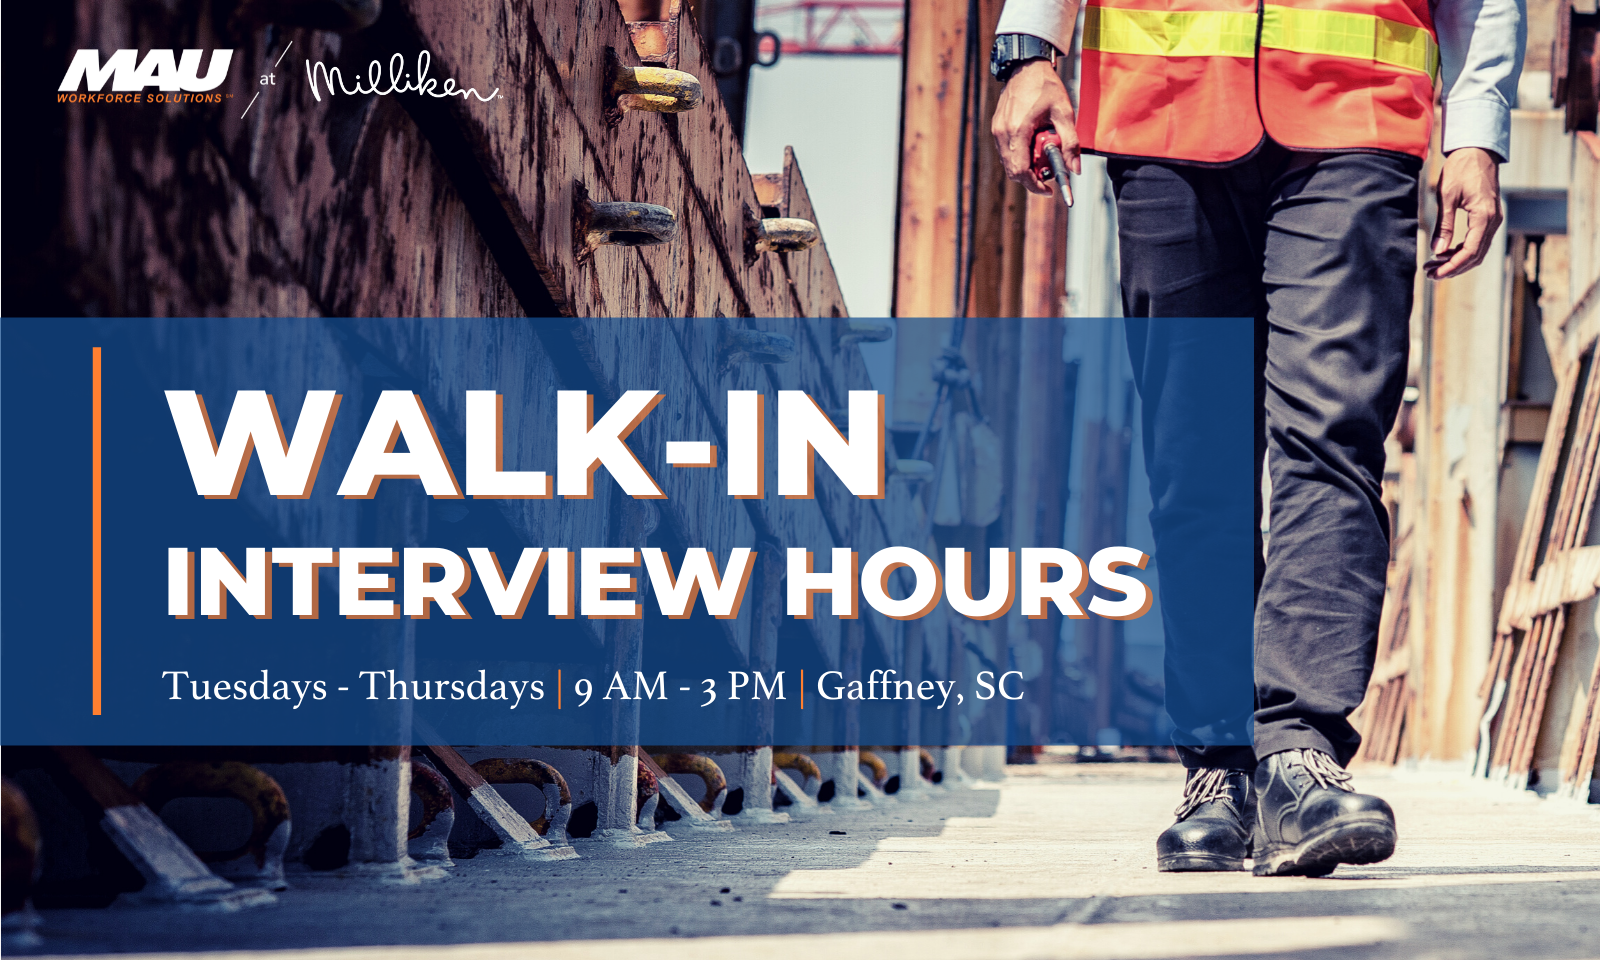 MAU at Milliken to Hold Walk-in Interview Hours at the MAU Gaffney branch